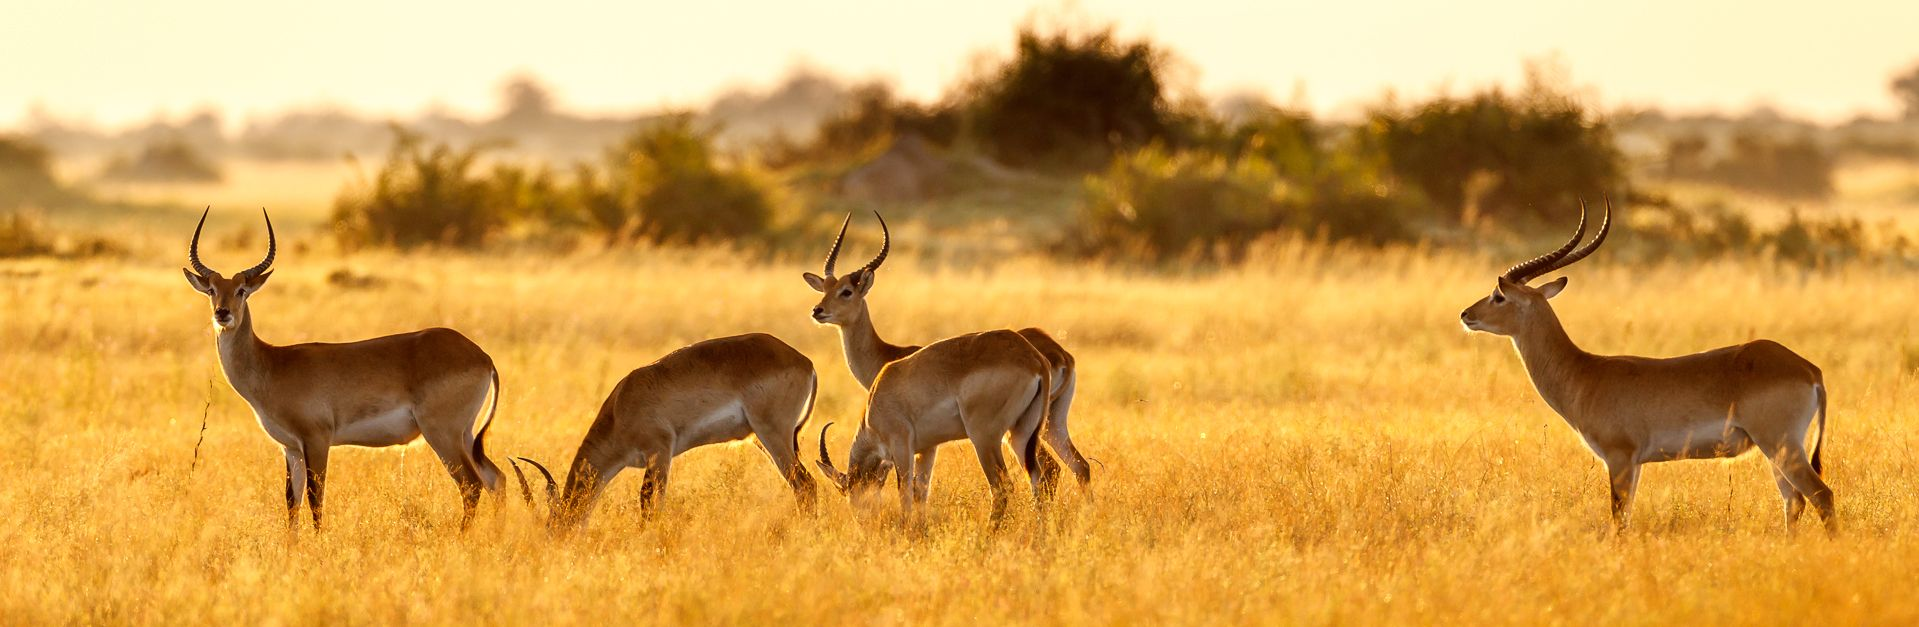 01 Red Lechwe in Golden Light